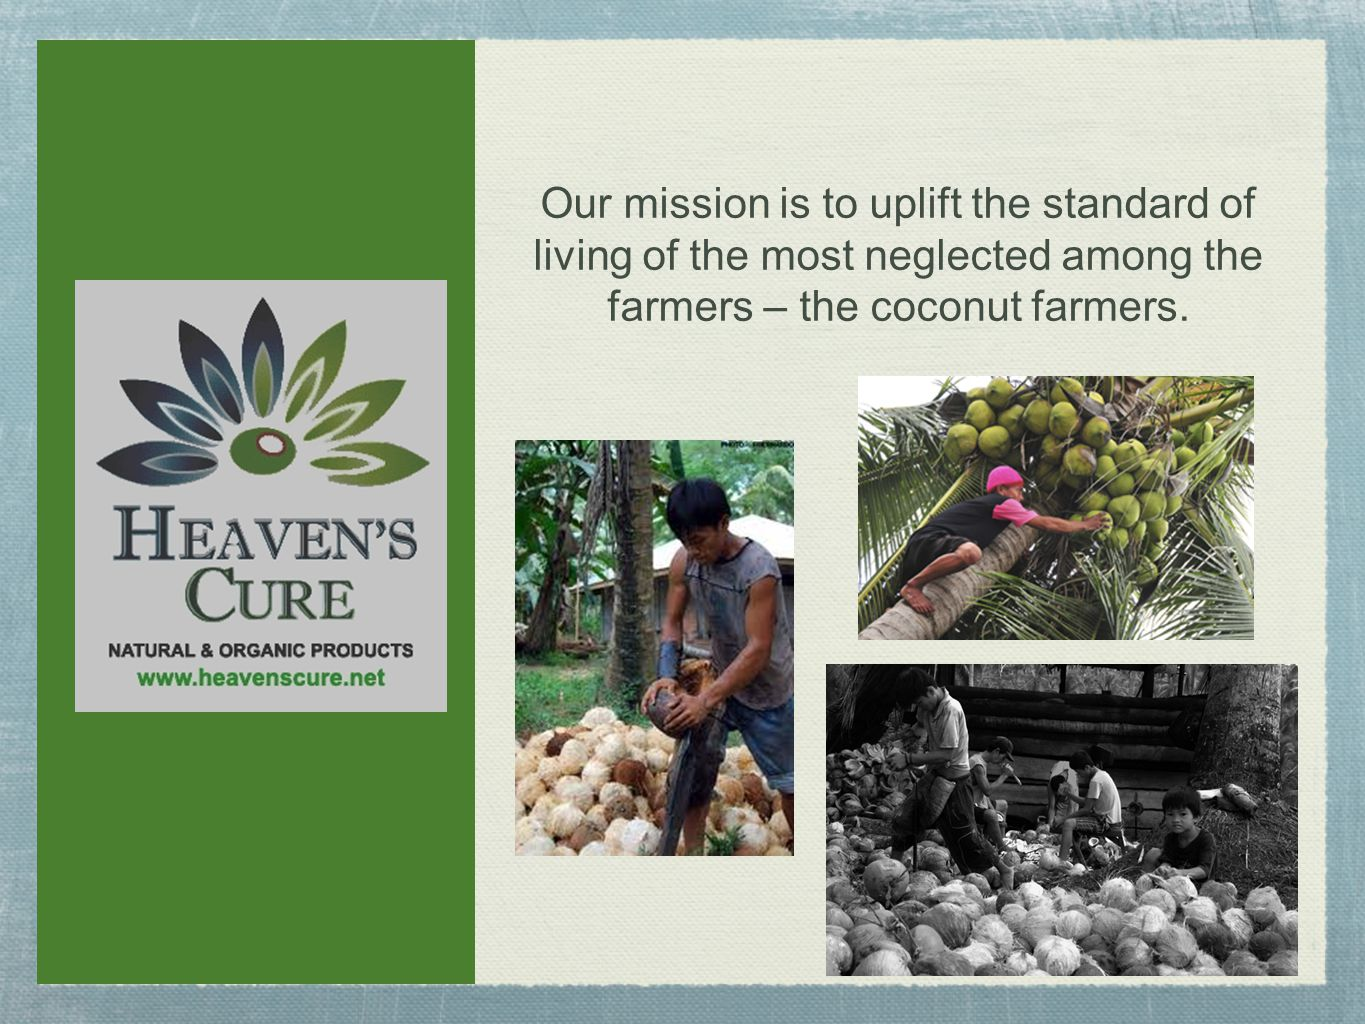 Our mission is to uplift the standard of living of the most neglected among the farmers – the coconut farmers.